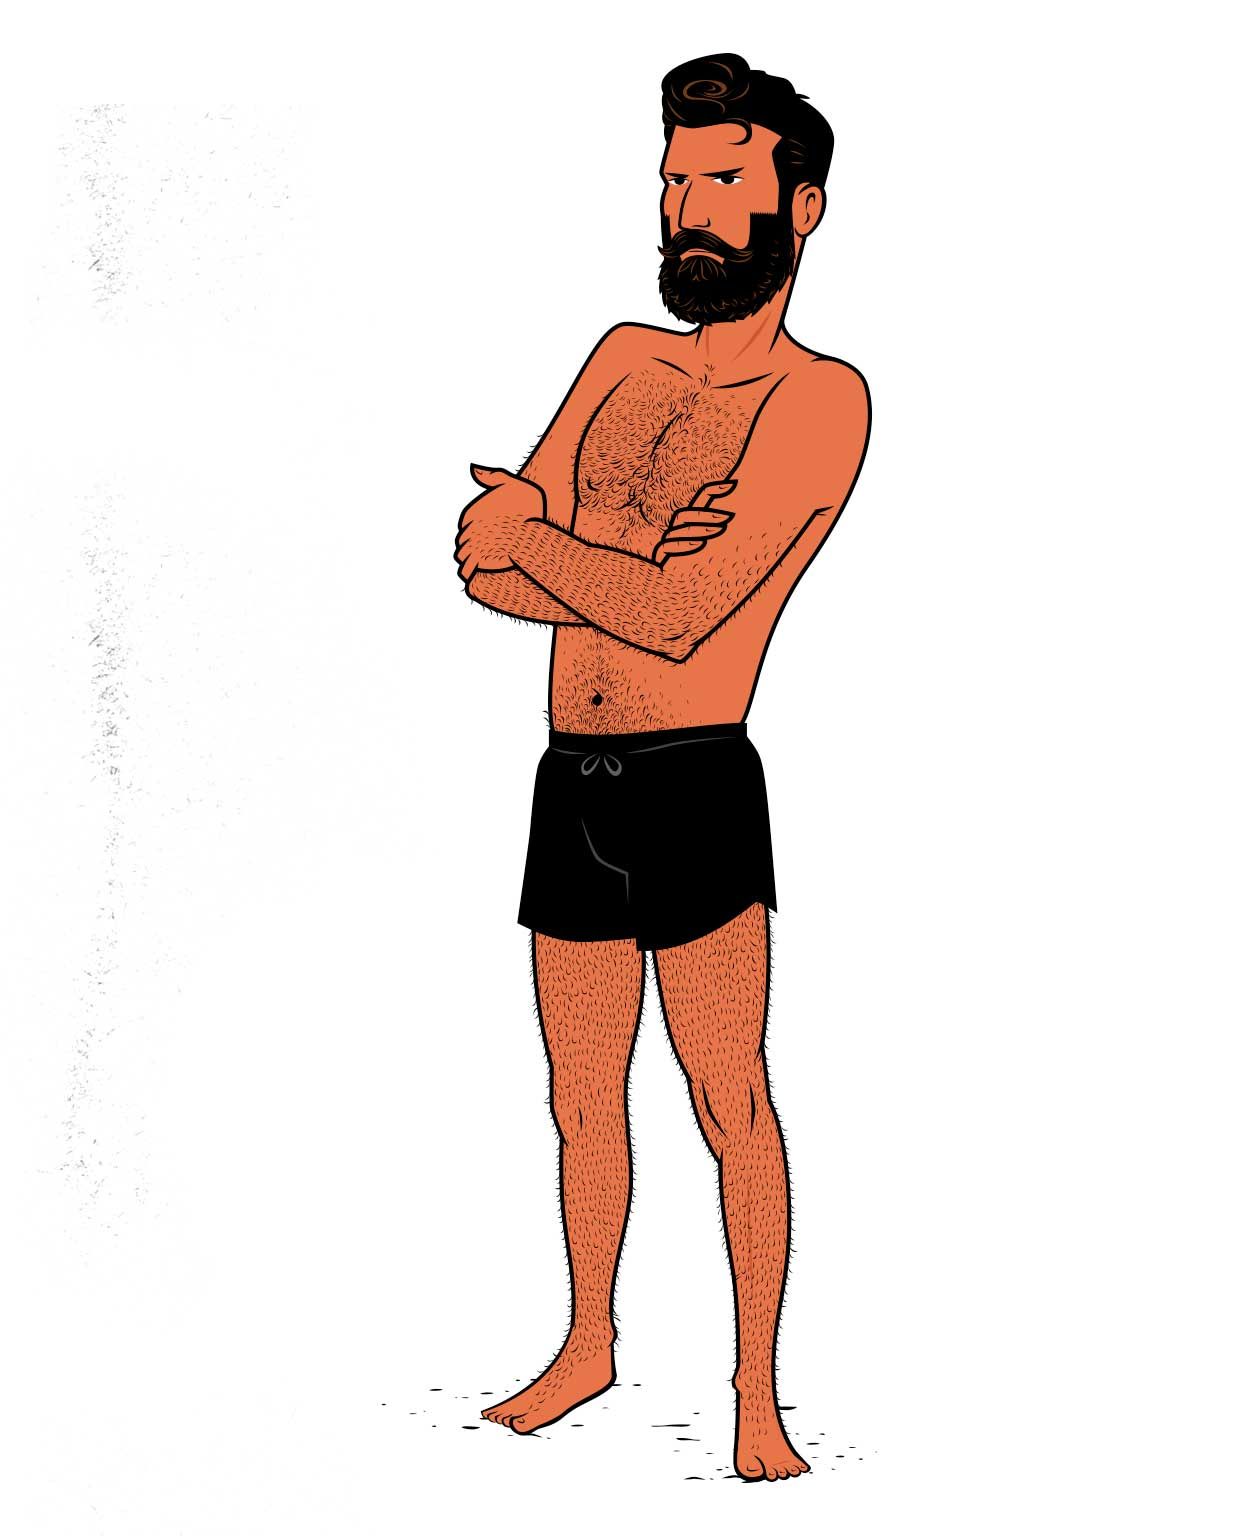 Illustration of a skinny guy.